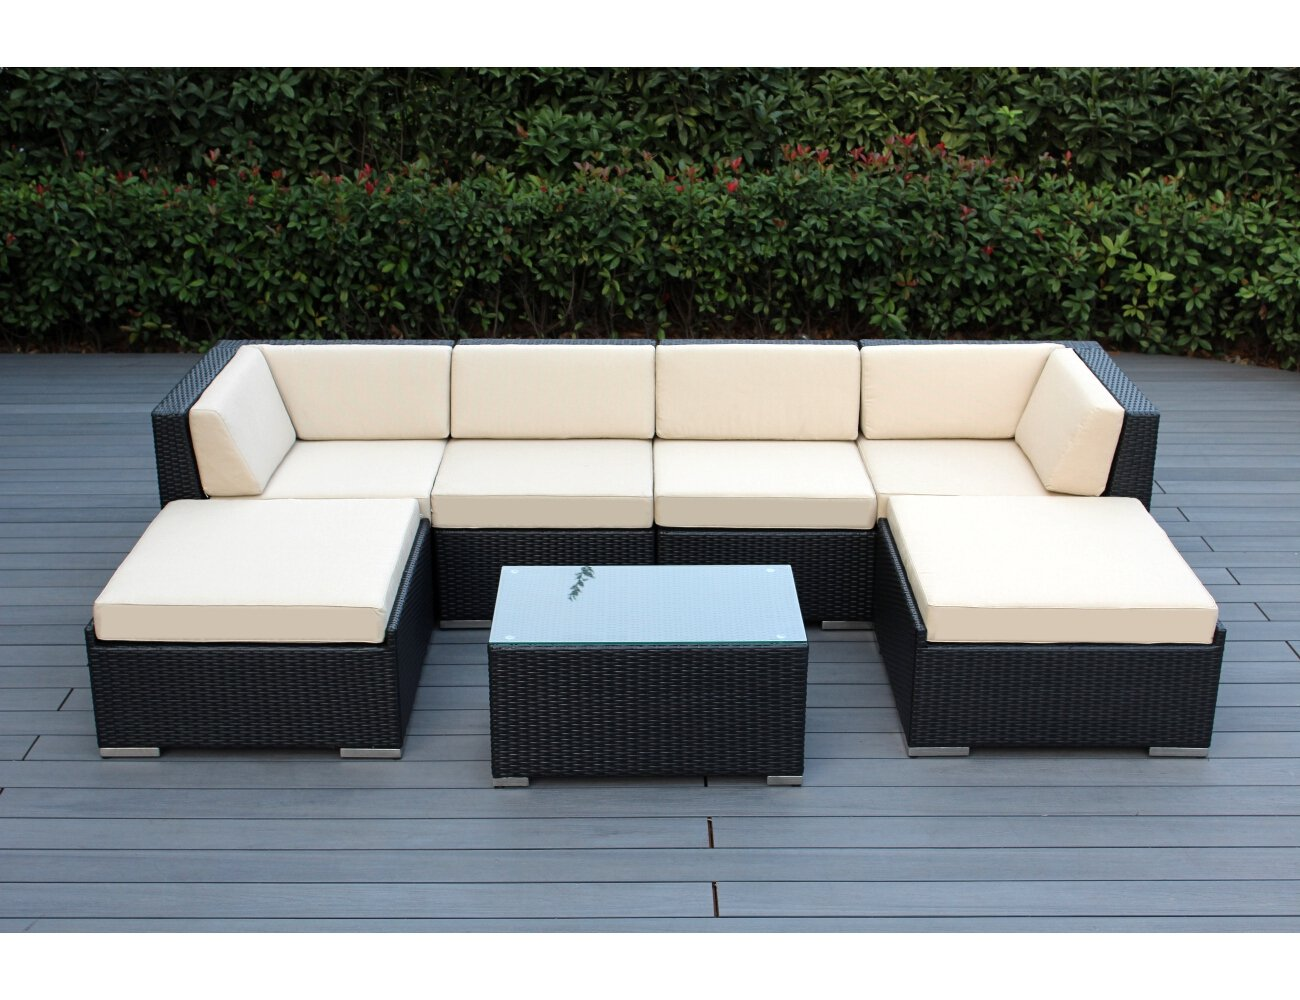 Genuine Ohana Outdoor Patio Wicker Furniture 7pc All Weather Gorgeous Couch  Set With BEIGE CUSHION: Amazon.ca: Patio, Lawn & Garden